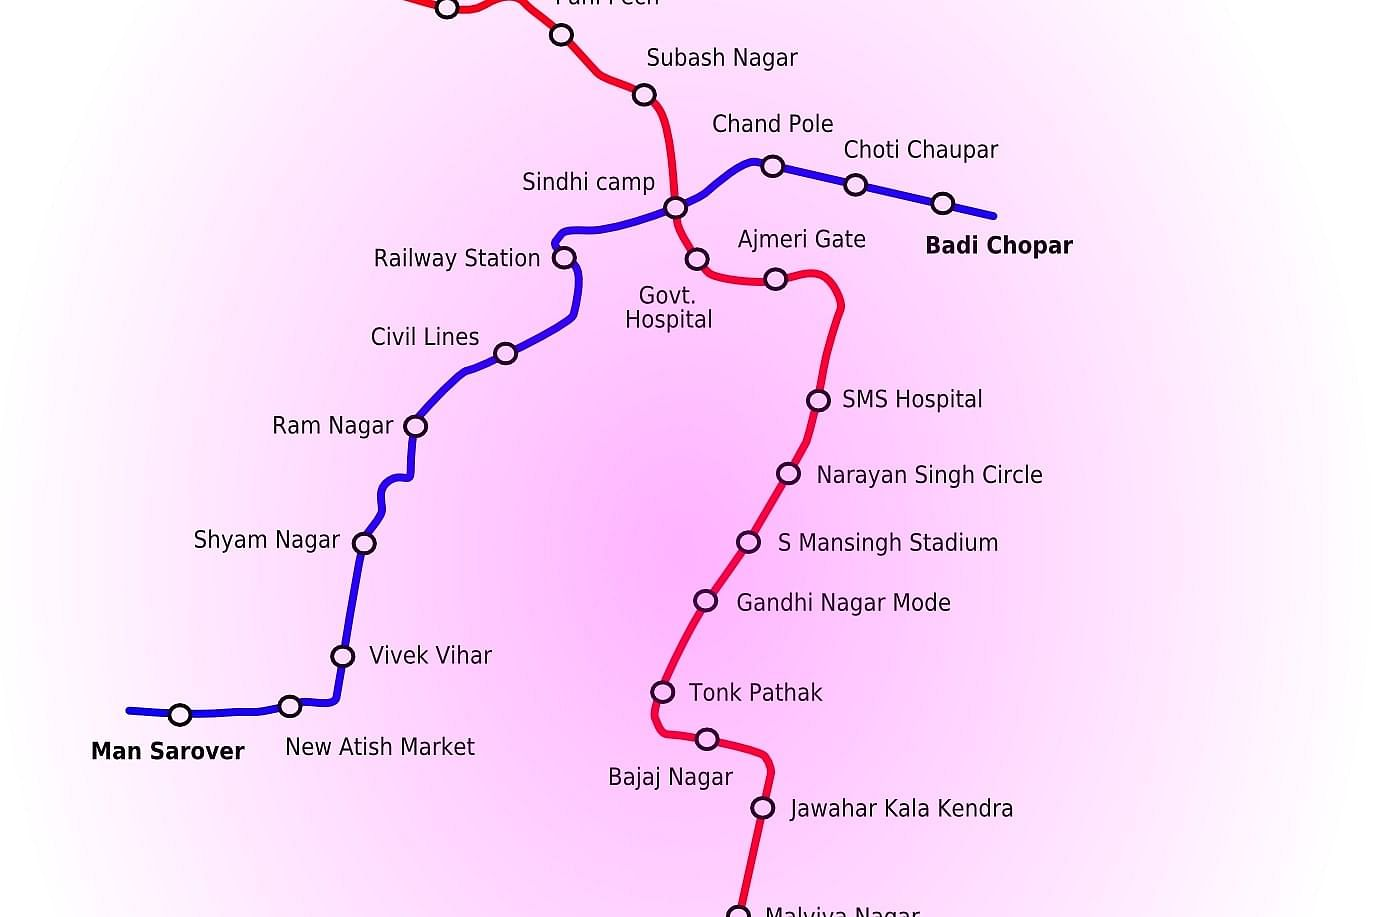 The Blue line of the Metro is functional . The Phase 2 will extend the blue line to Badi Chopar from the current last stop Chand Pole.